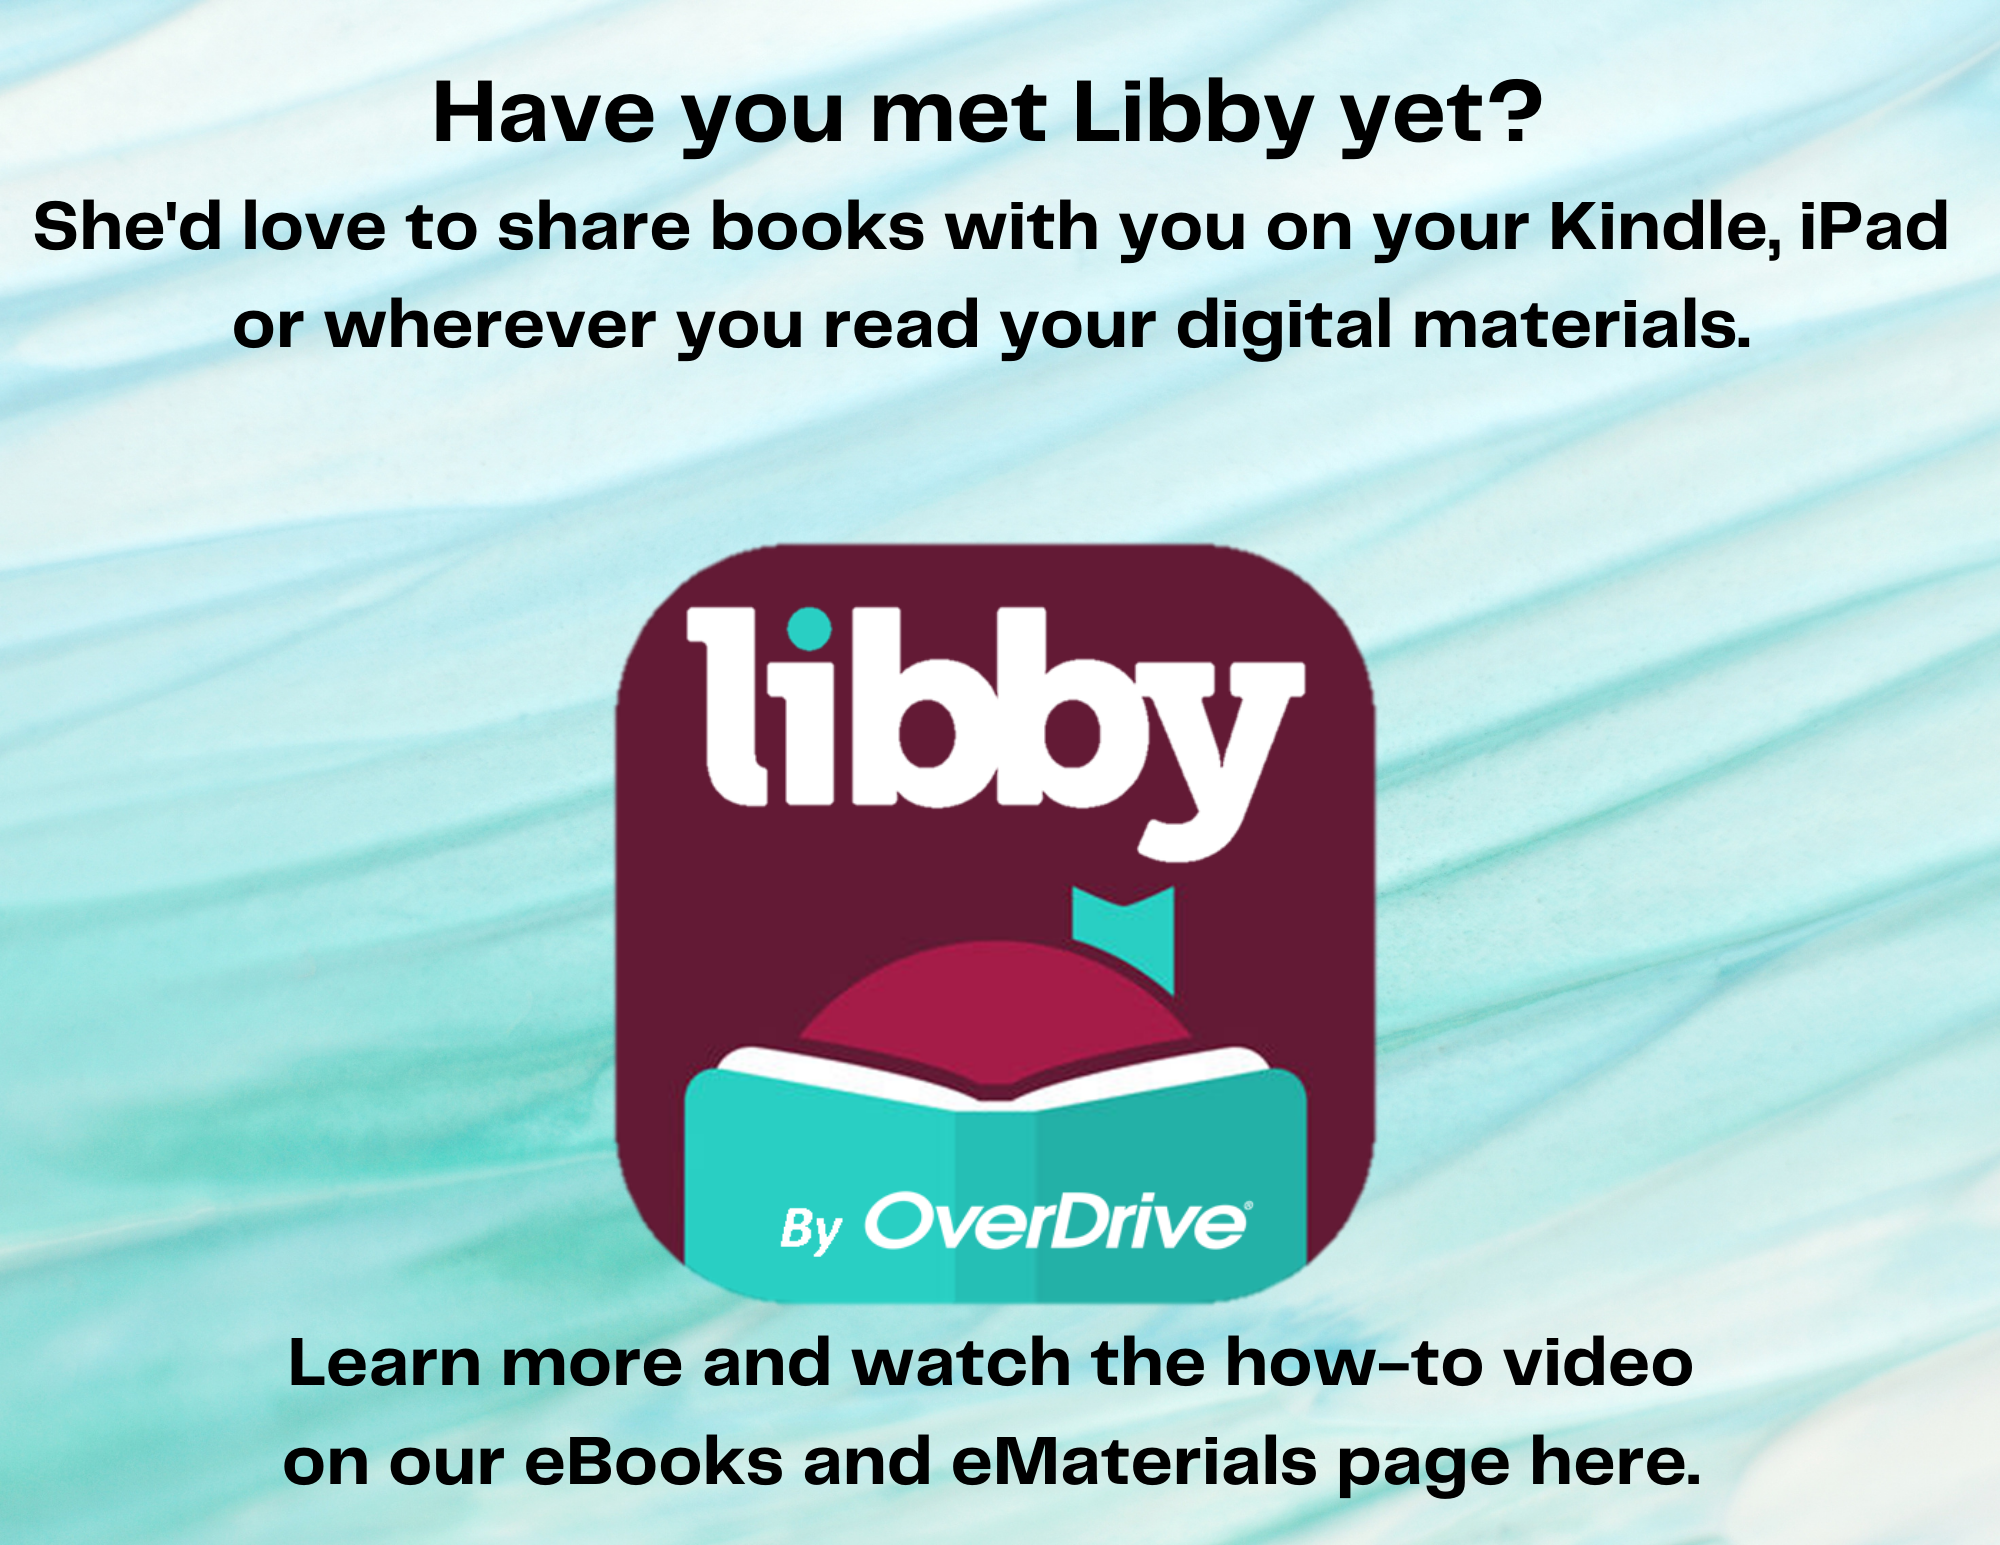 libby pic.png